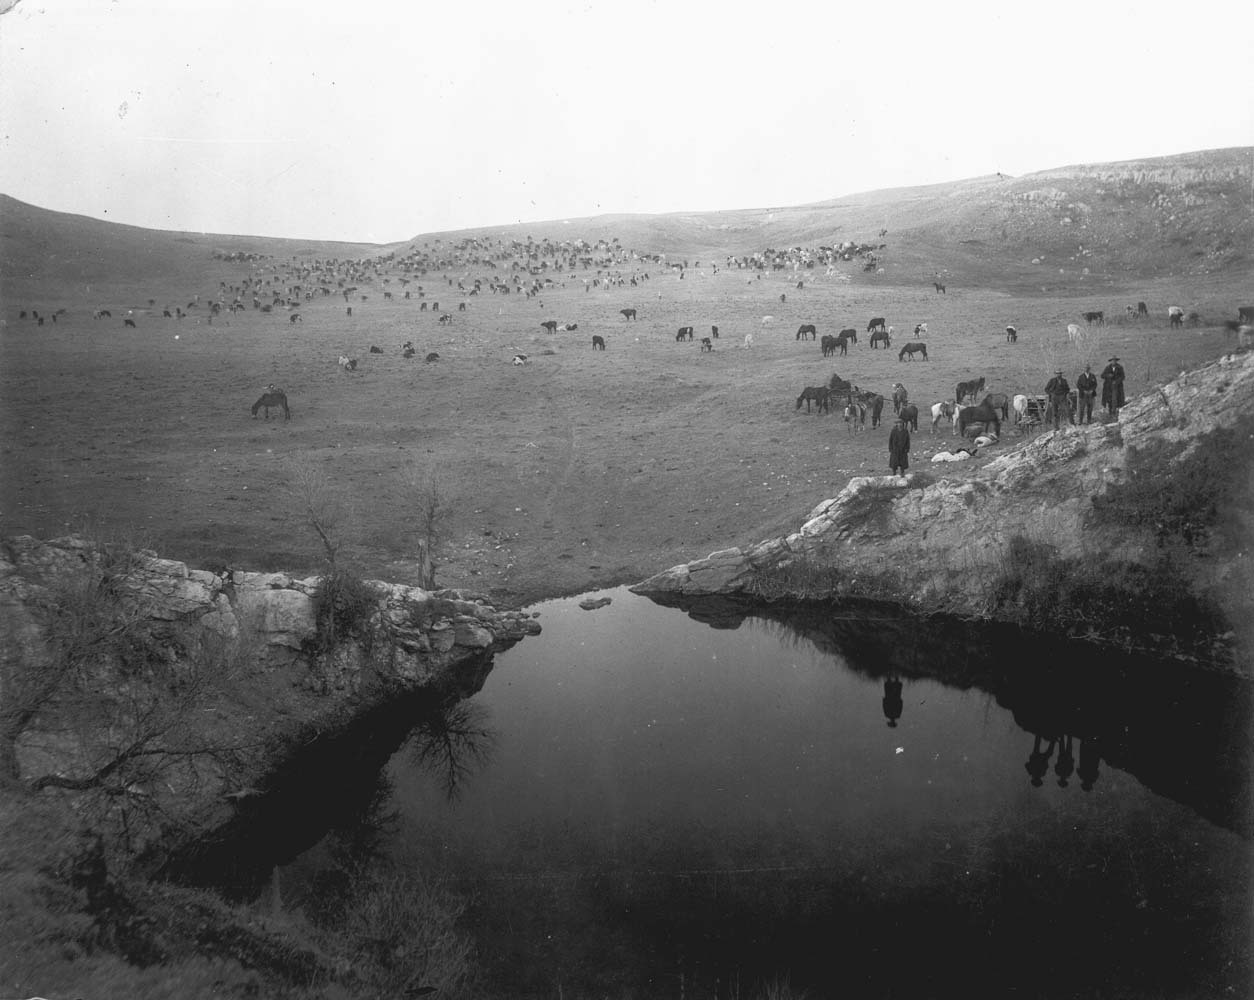 Cattle herd at St. Jacobs Well, Clark County, Kansas